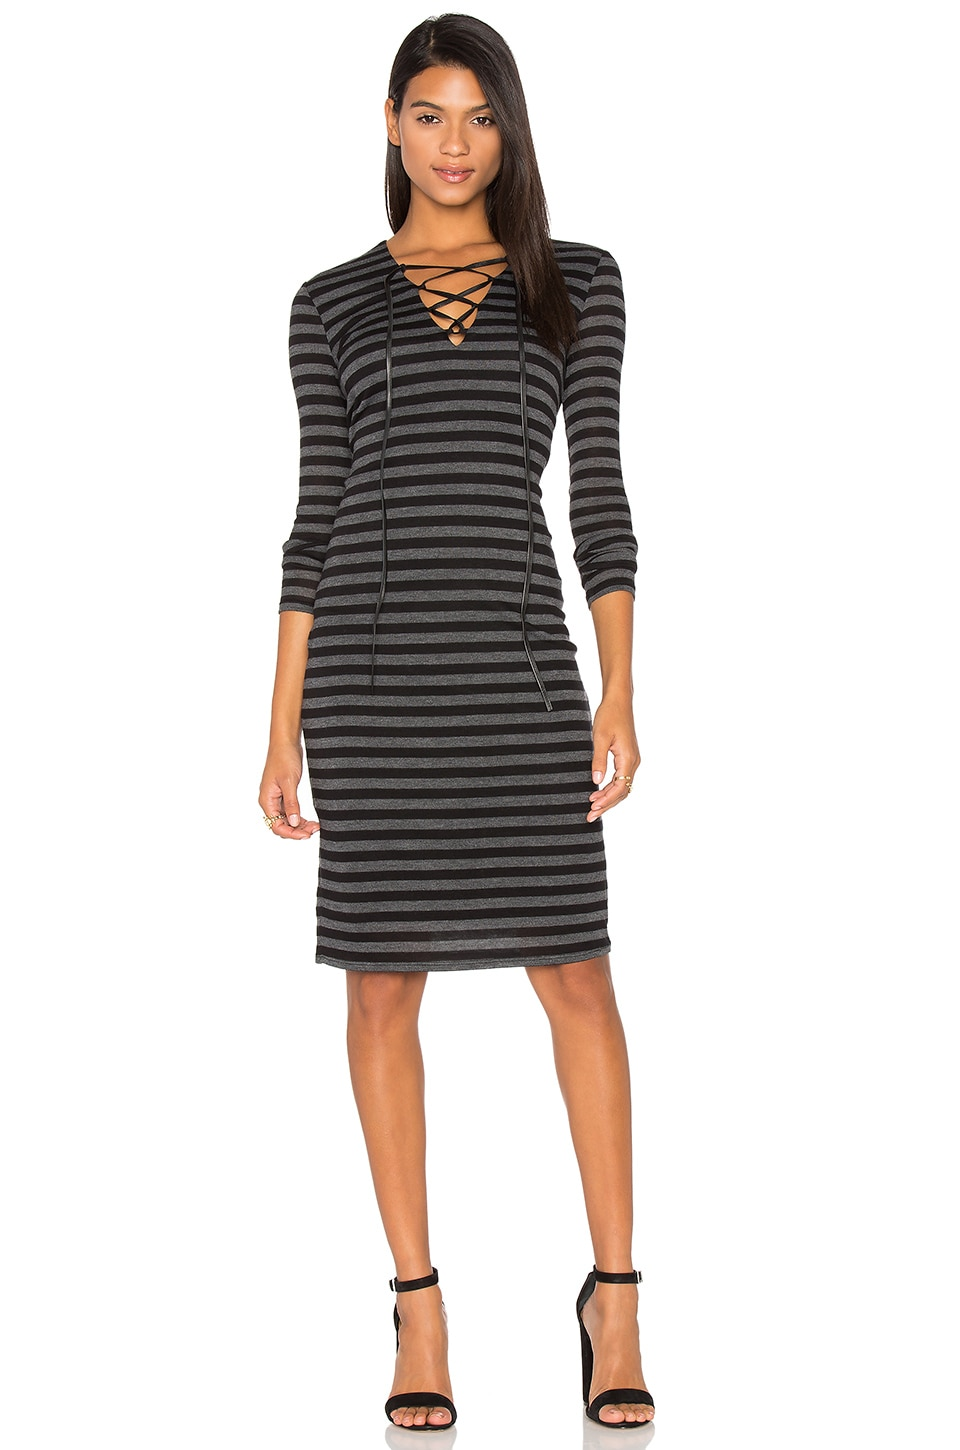 Luxe Lace Up Dress by twenty